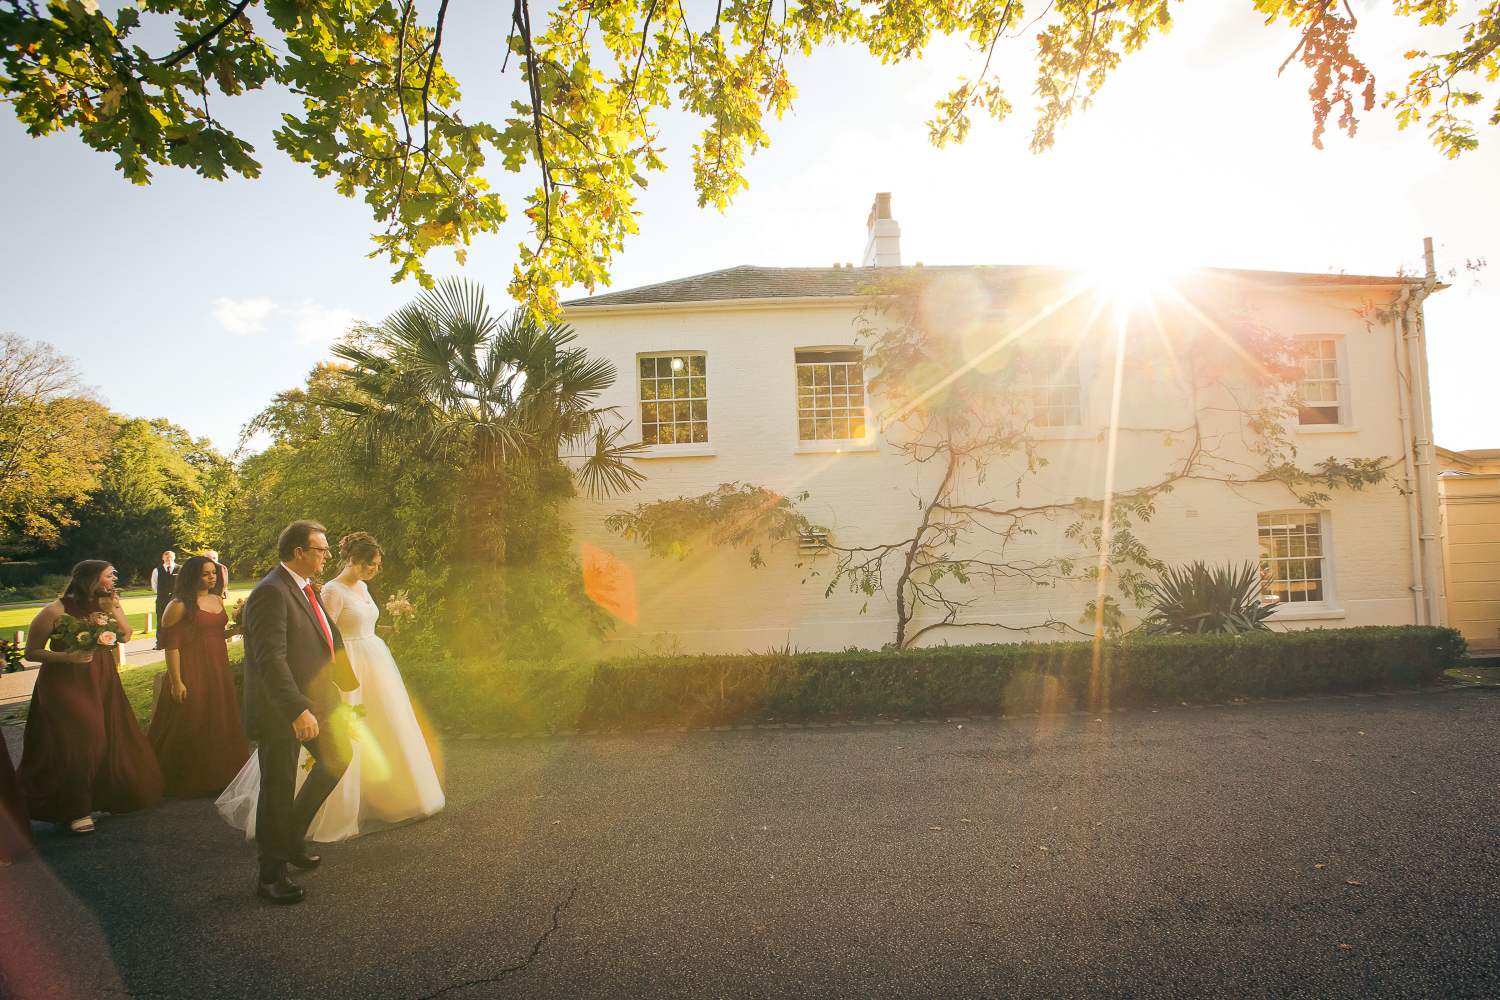 A sunny walk under the trees, in front of the wedding venue with the bride's dad and bridesmaids